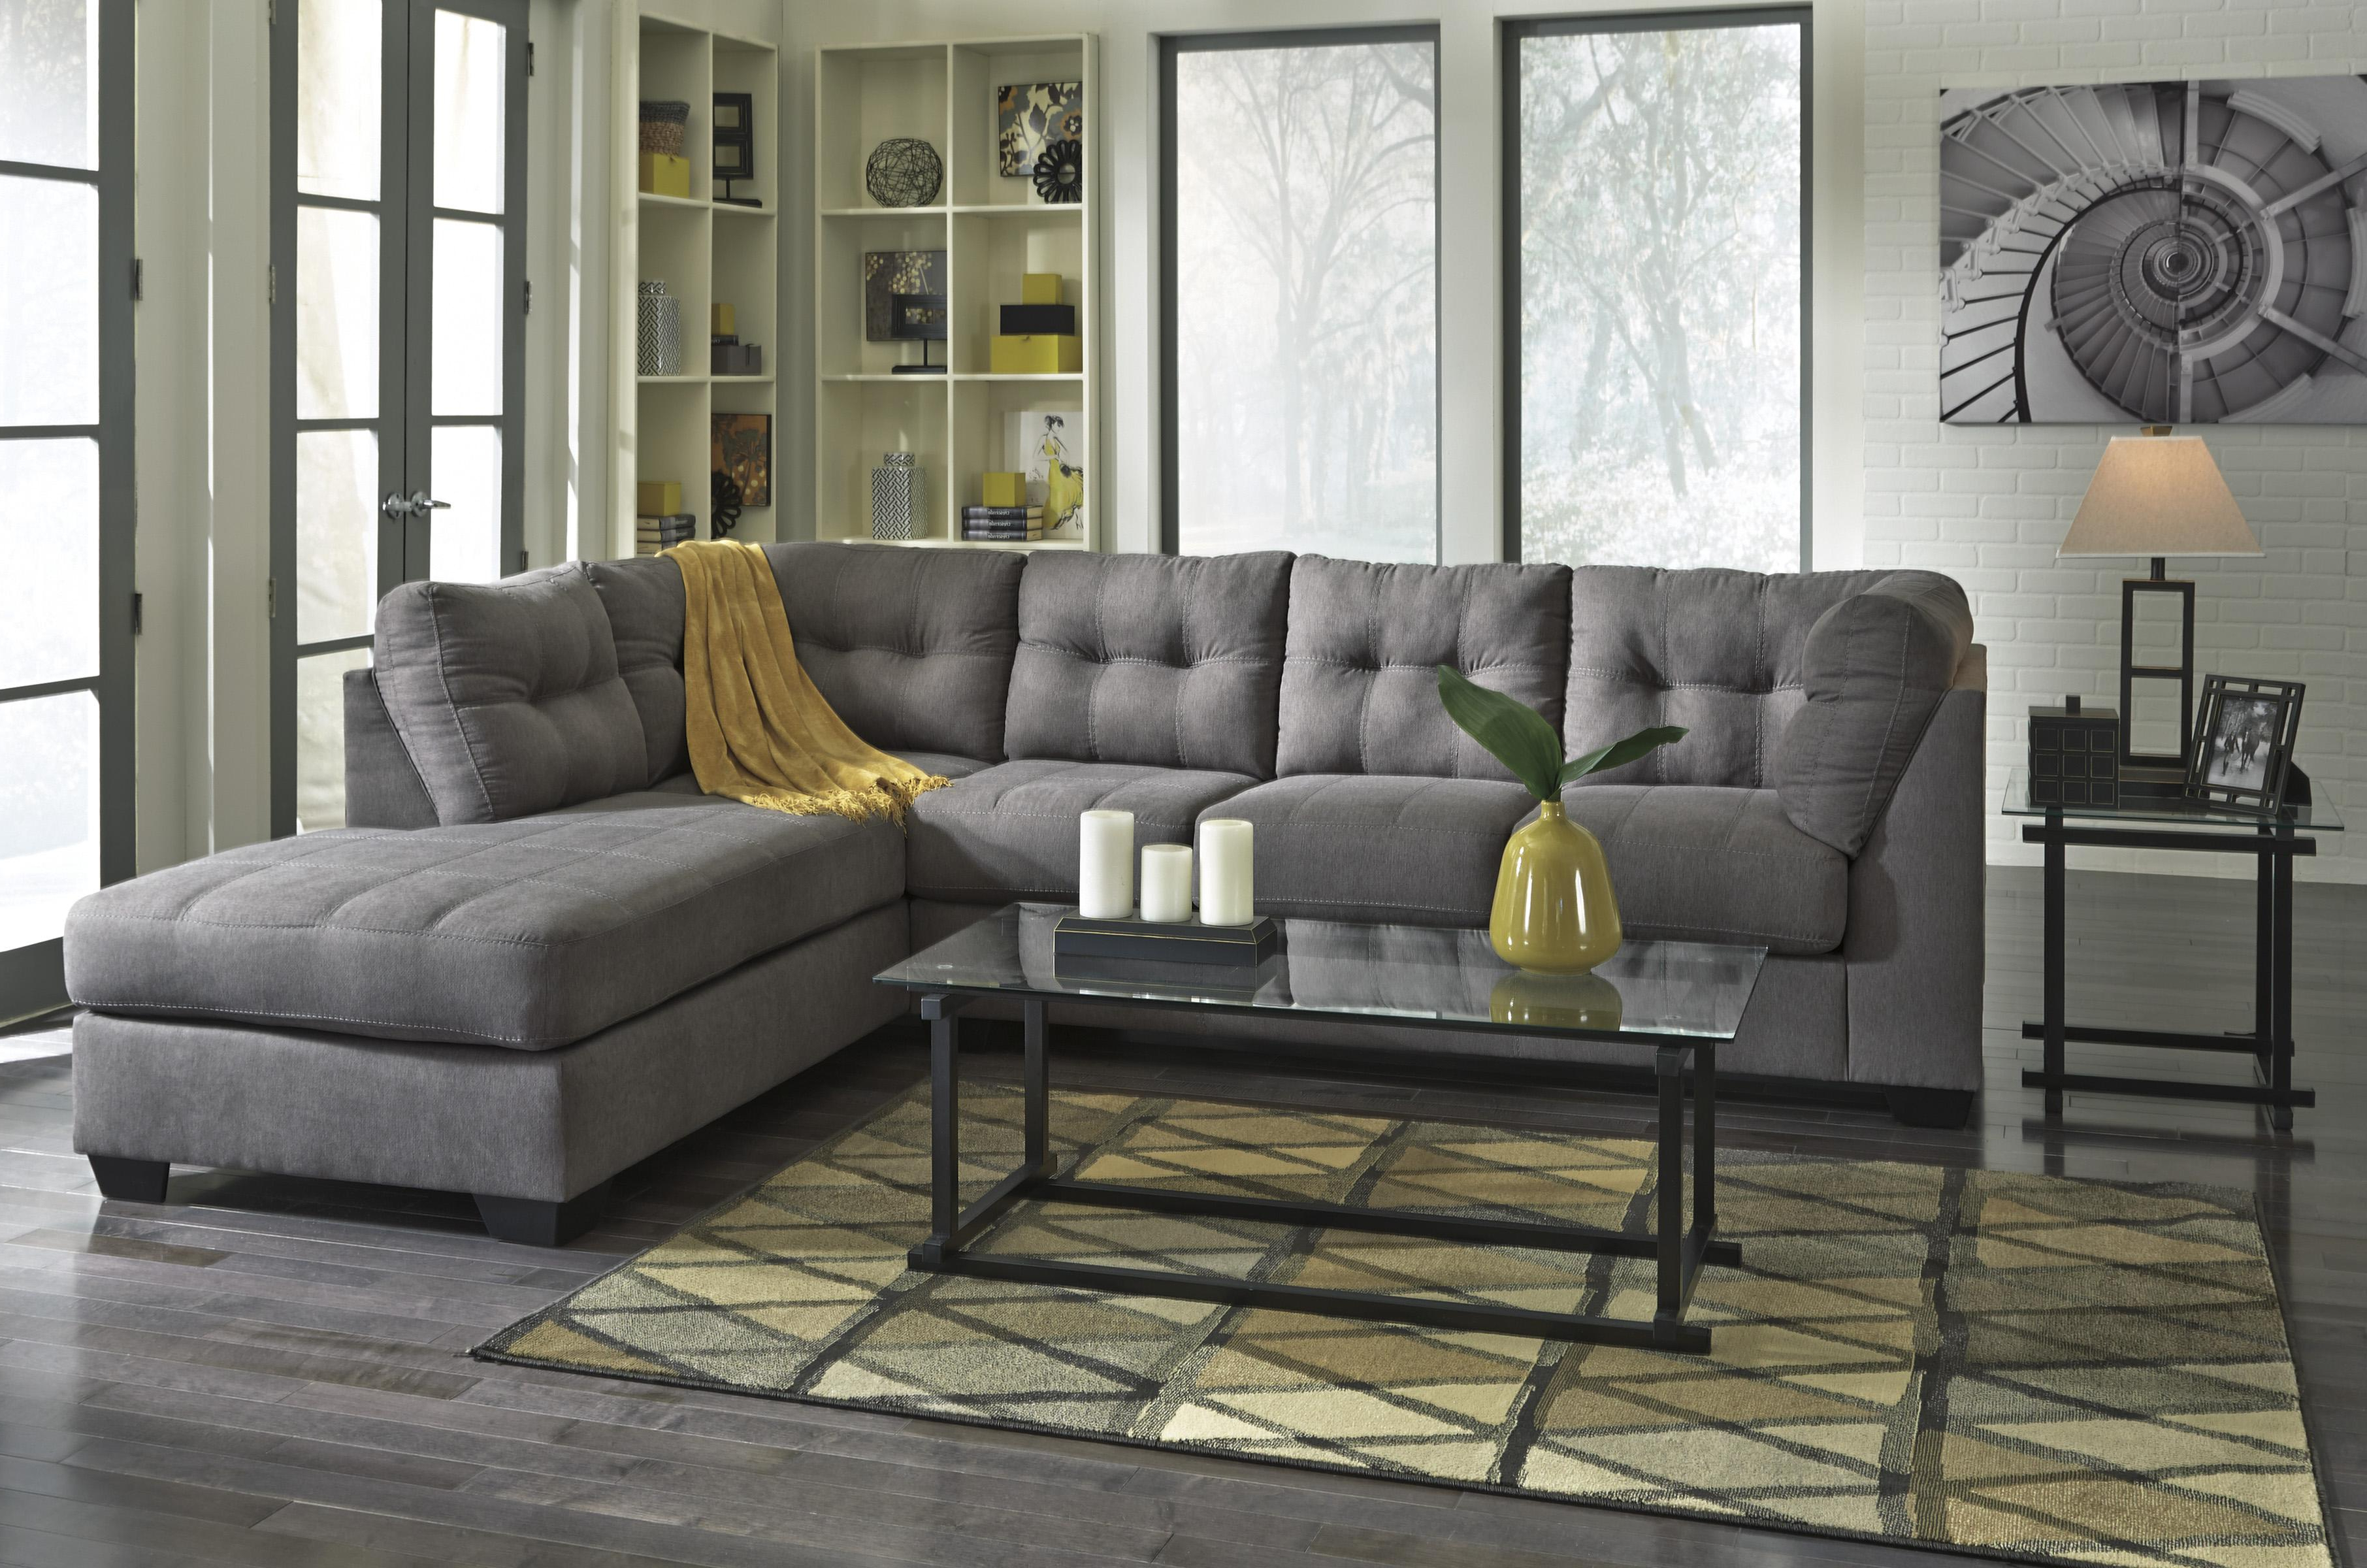 Fashionable Piece Sectional With Right Chaise Benchcraft Wolf And Products Color Regarding Aspen 2 Piece Sleeper Sectionals With Raf Chaise (Gallery 13 of 20)